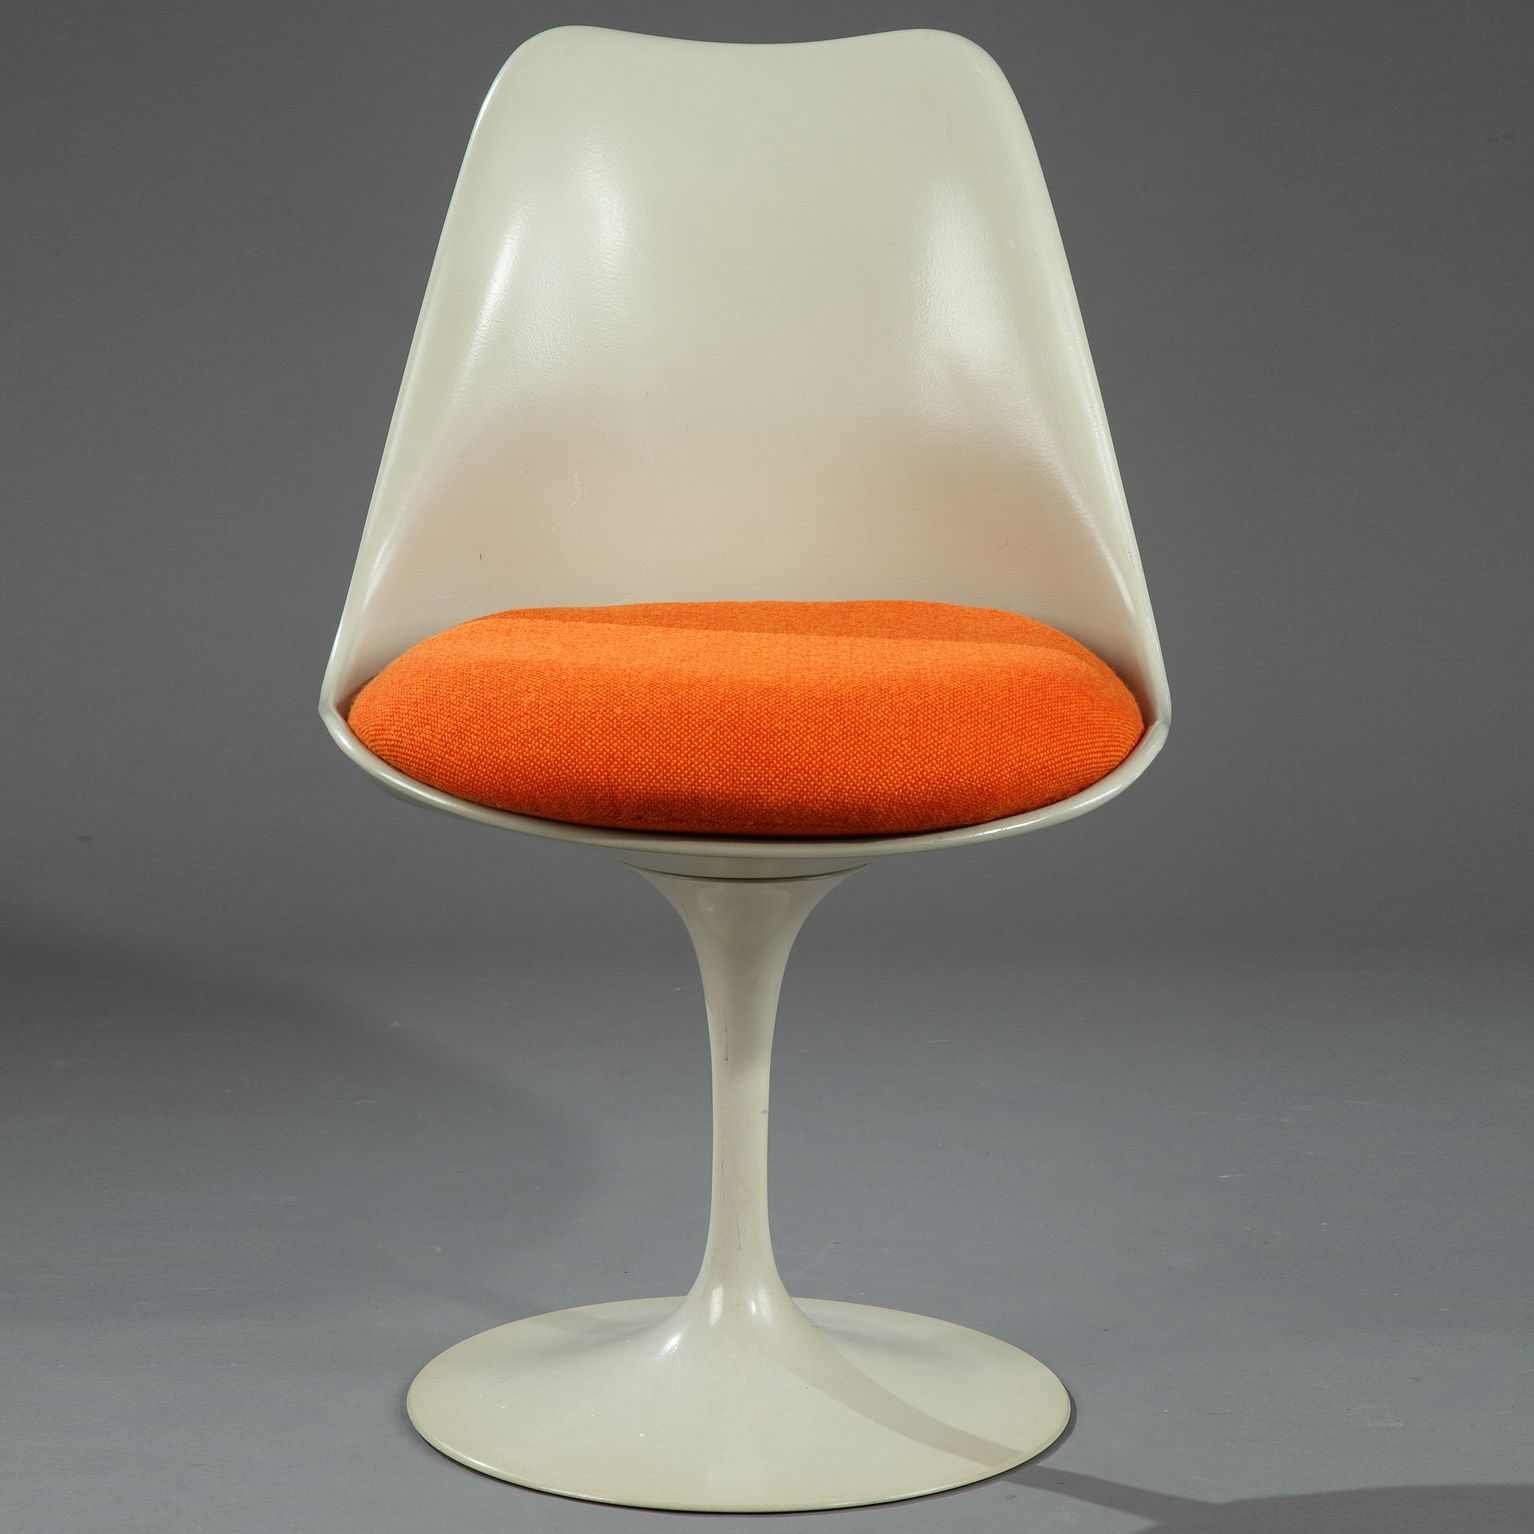 Tulip Chair In Bright Beige Metal Resting On A Rotating Base With New Upholstery In Orange Fabric Created In 1956 By E Chaise Tulipe Mobilier De Salon Tulipe